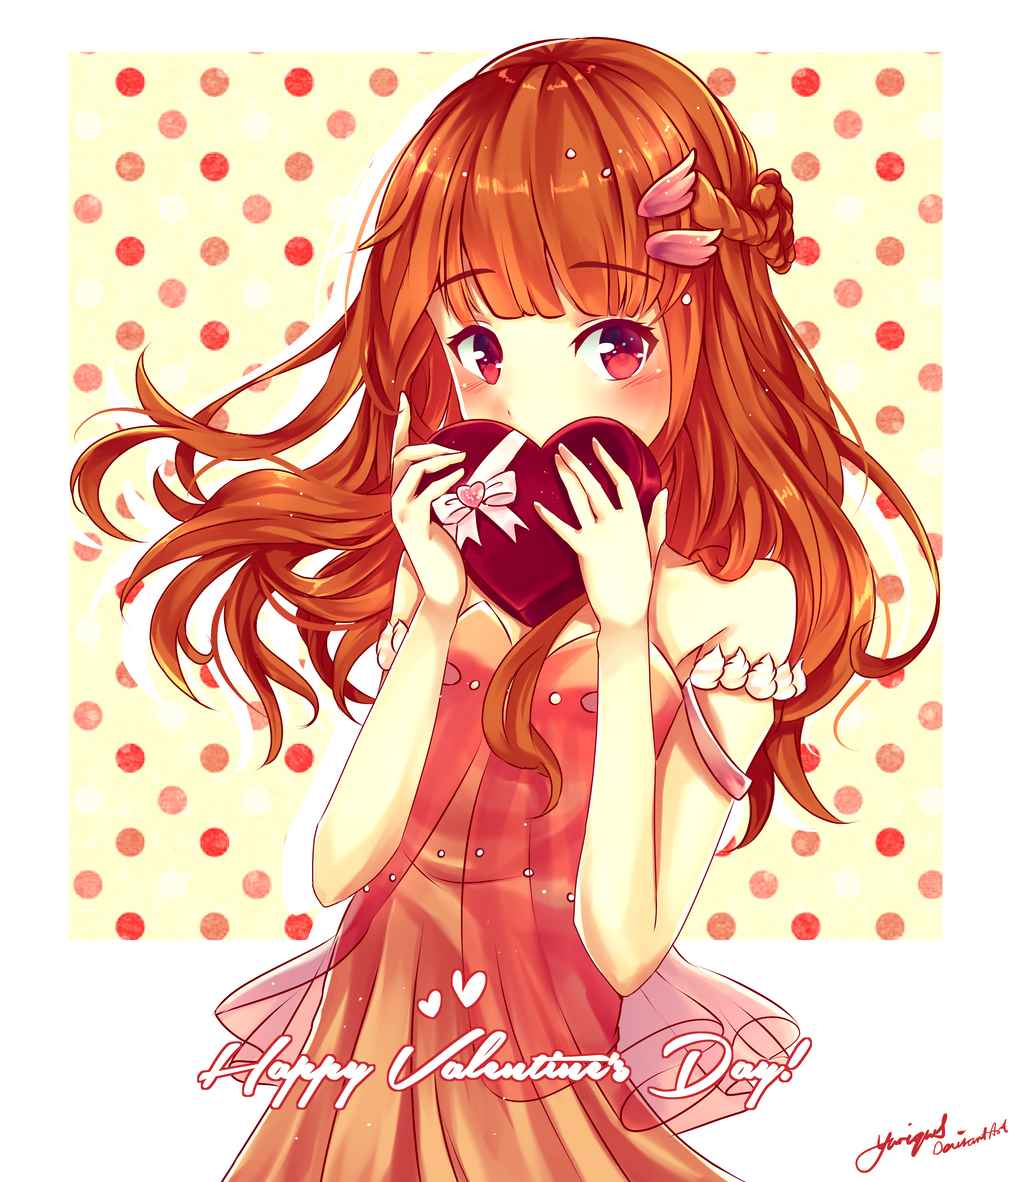 [+Speedpaint] By YuriqueS Happy Valentineu0027s Day! [+Speedpaint] By YuriqueS